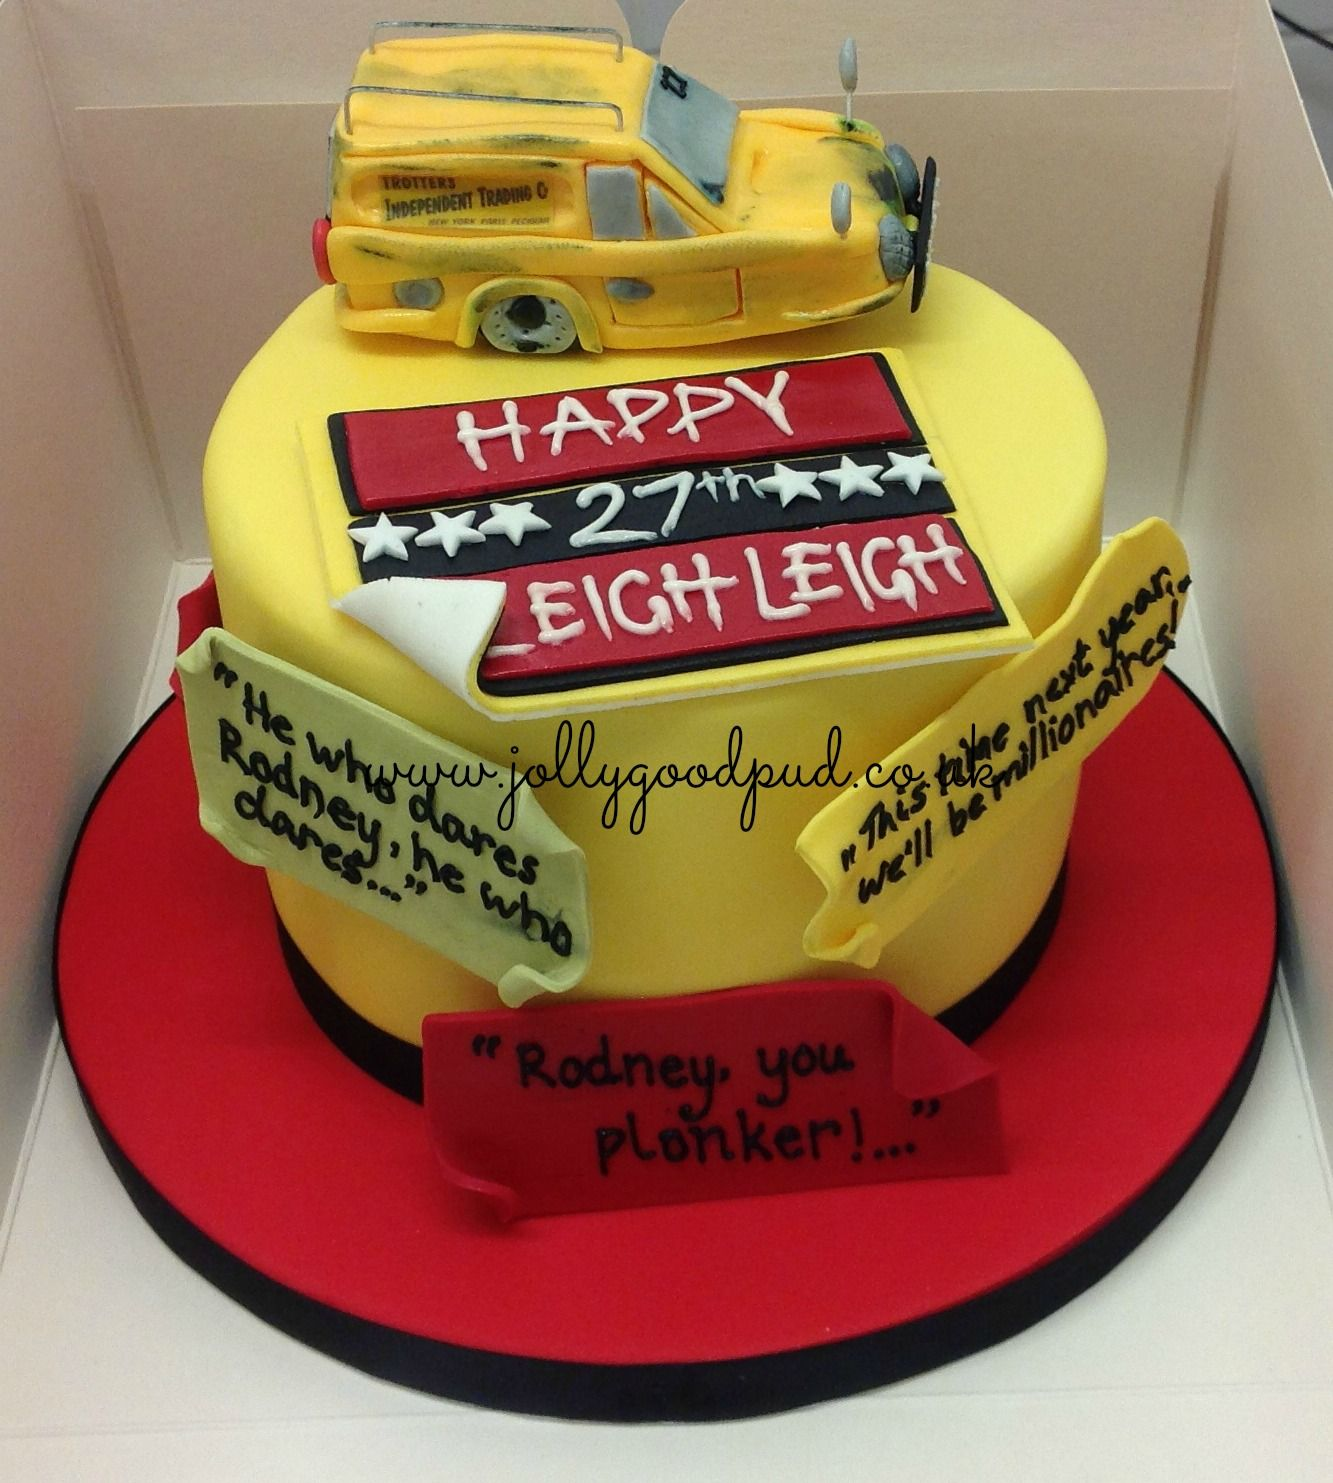 Only Fools Horses Birthday Cake from The Jolly Good Pud Company